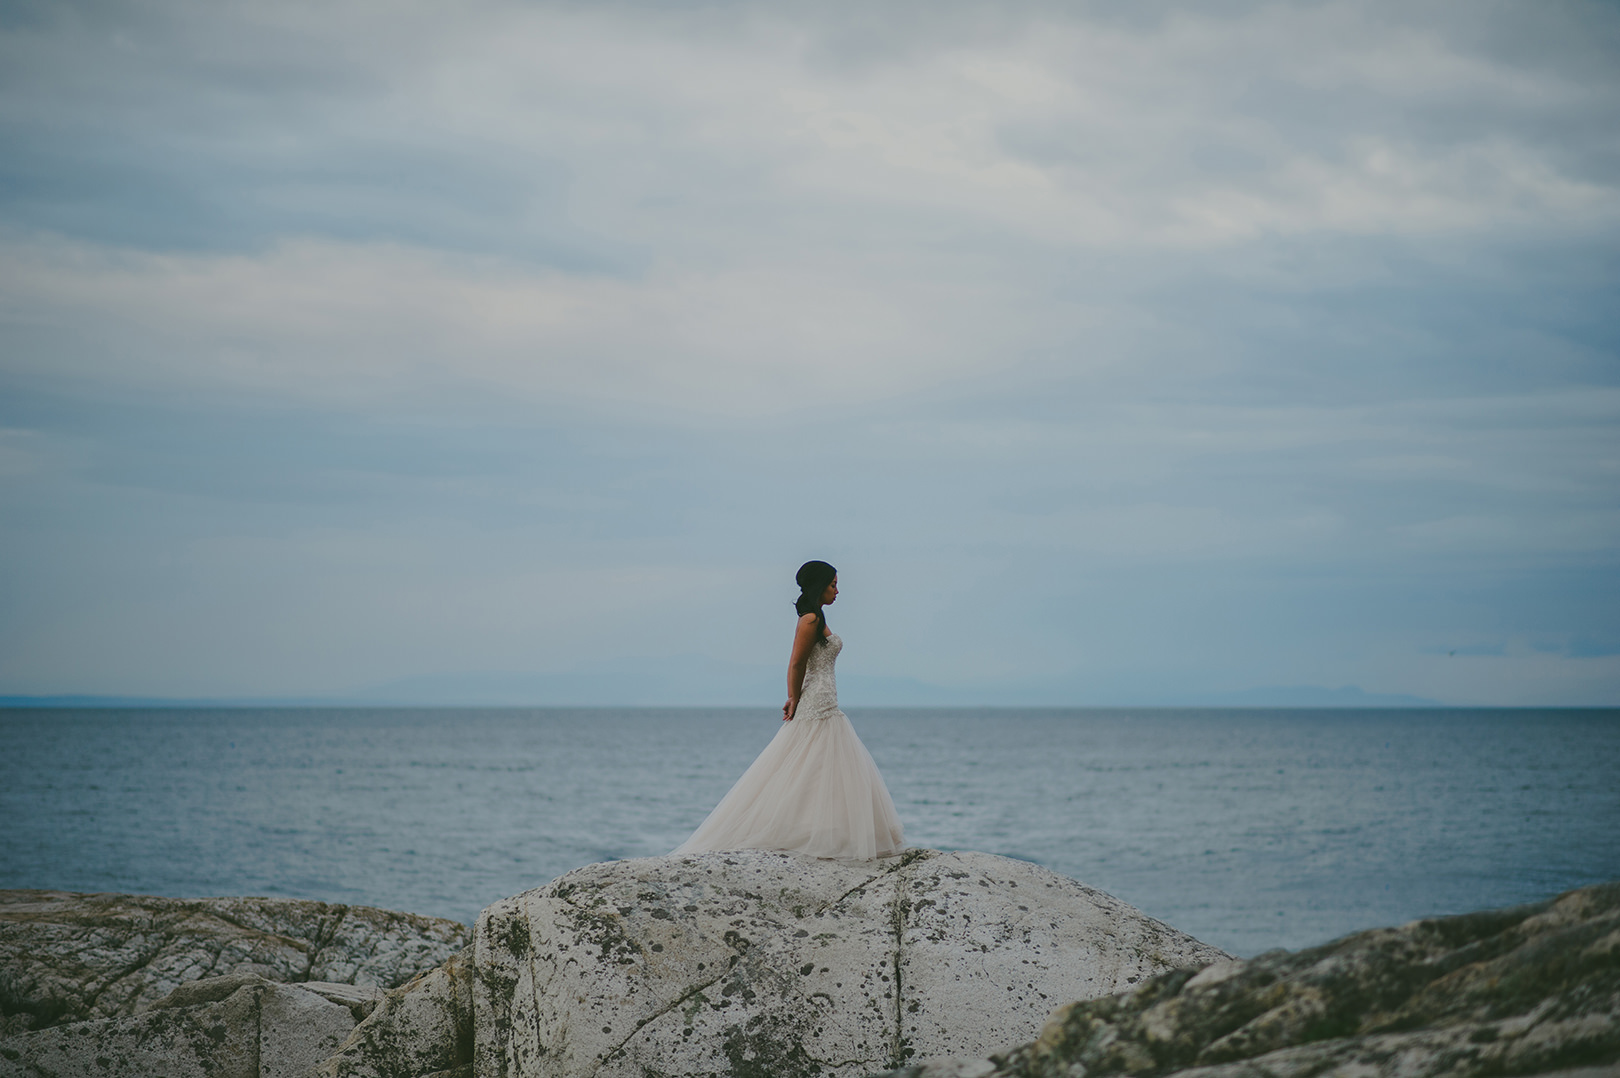 Spain Wedding Photographer - © Dallas Kolotylo Photography - 082